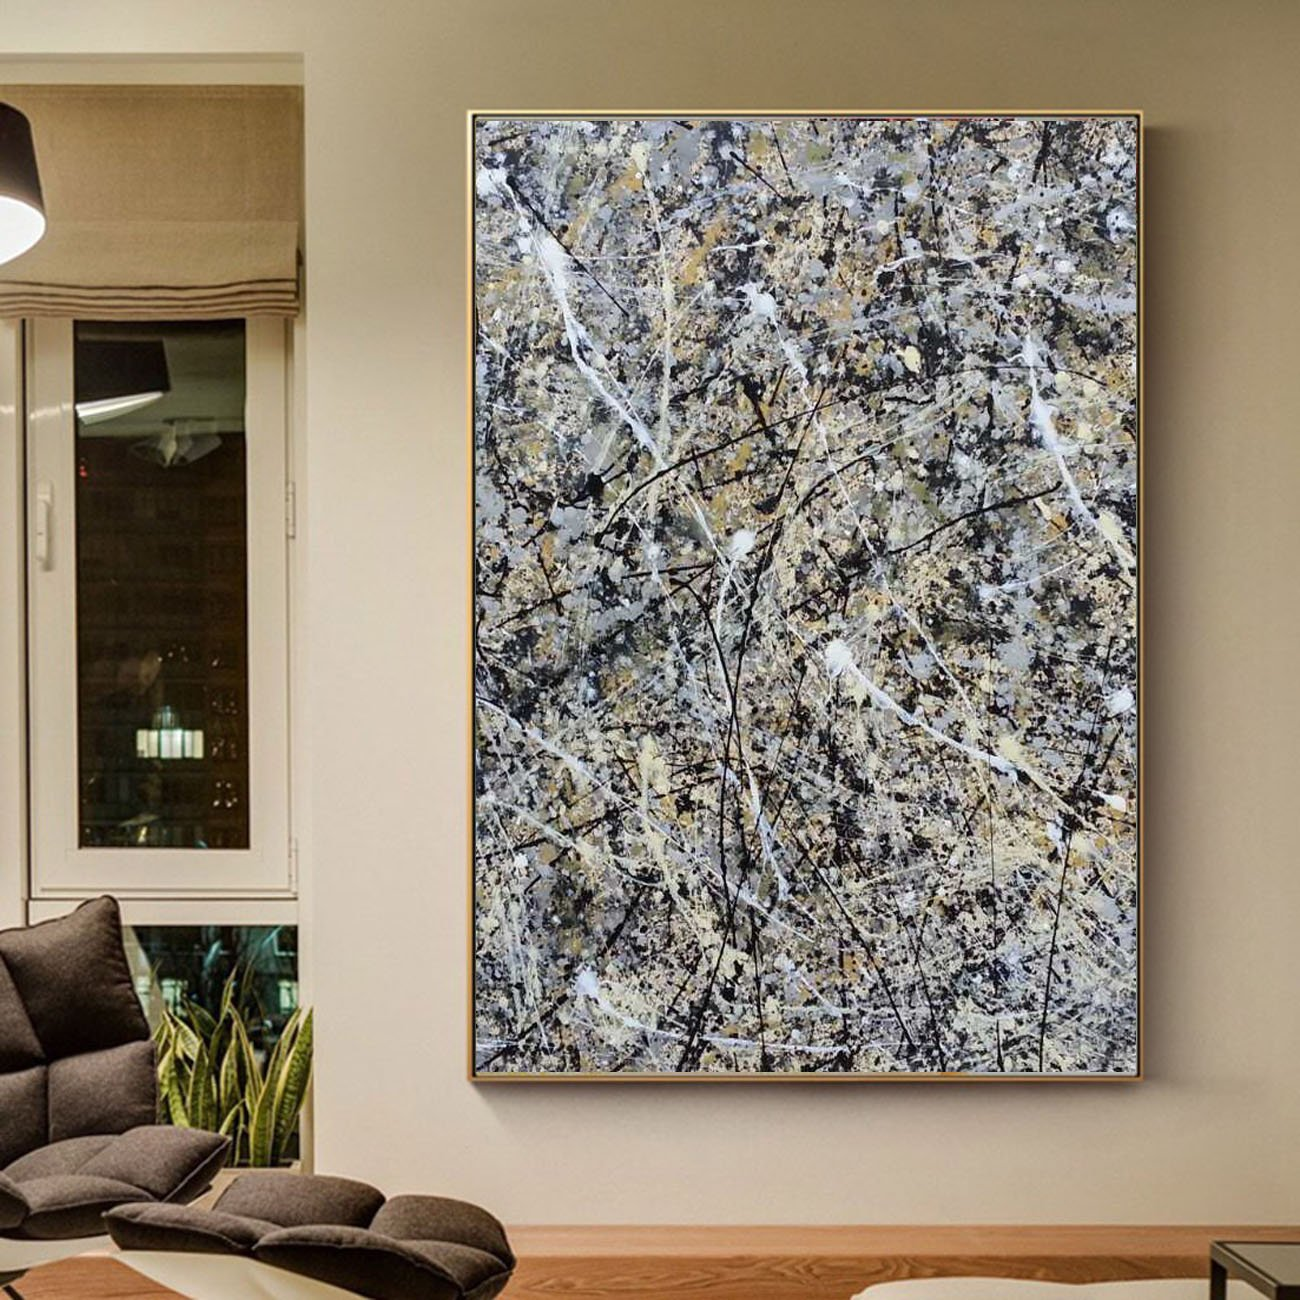 Oil-Painting Jackson Abstract-Art Master Oversized On Canvas Living-Room For For-Sale